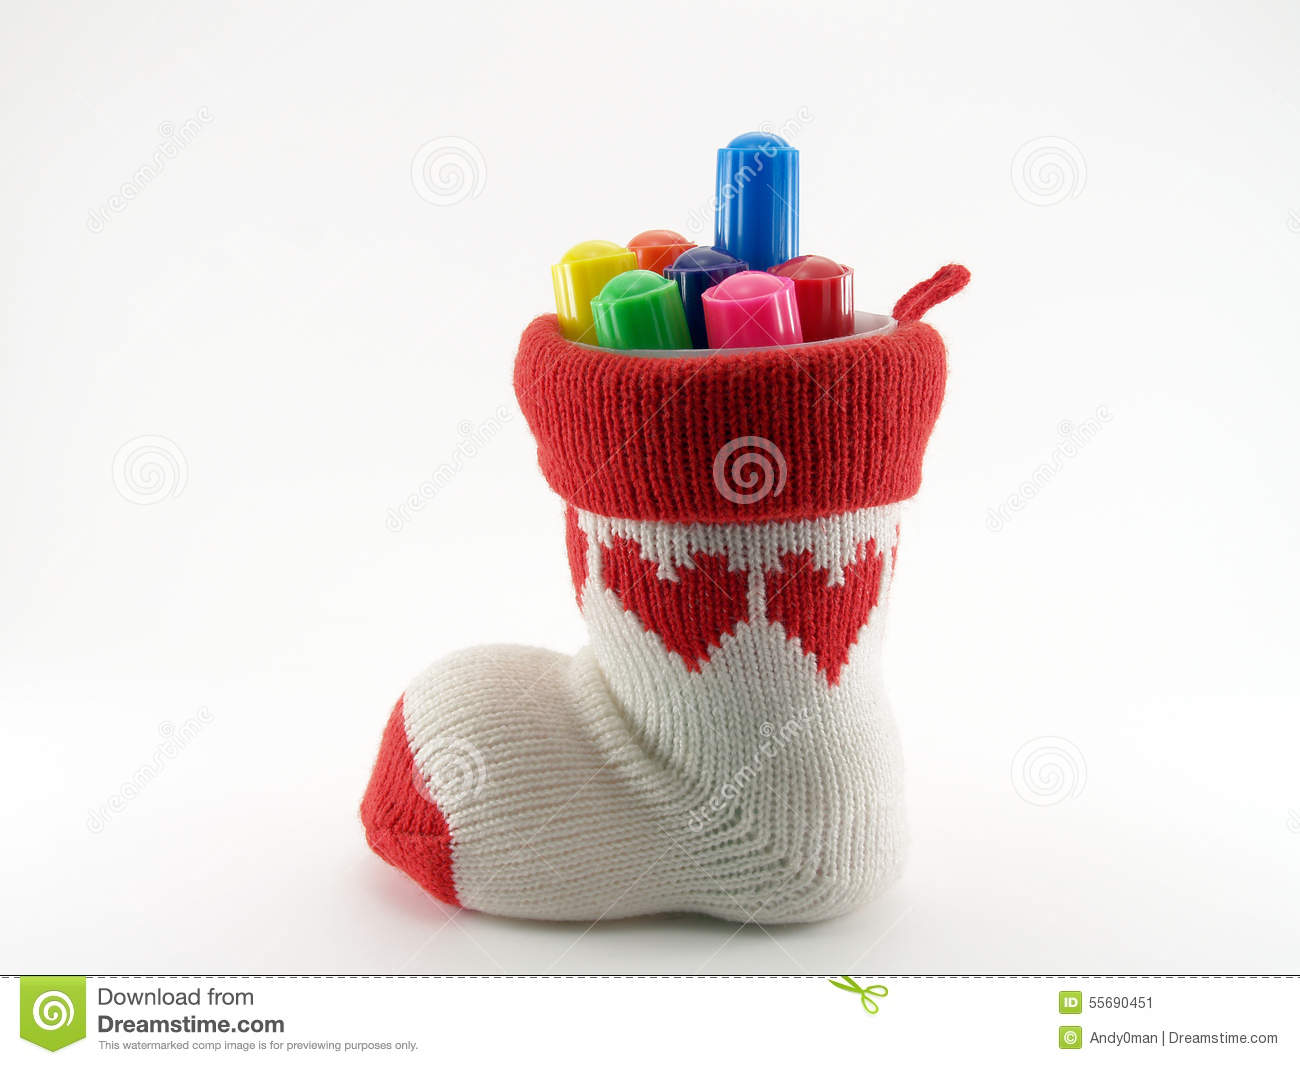 pen holder made of knitted yarn sock with red heart pattern and axis is a plastic cup with colorful color pen (felt tip